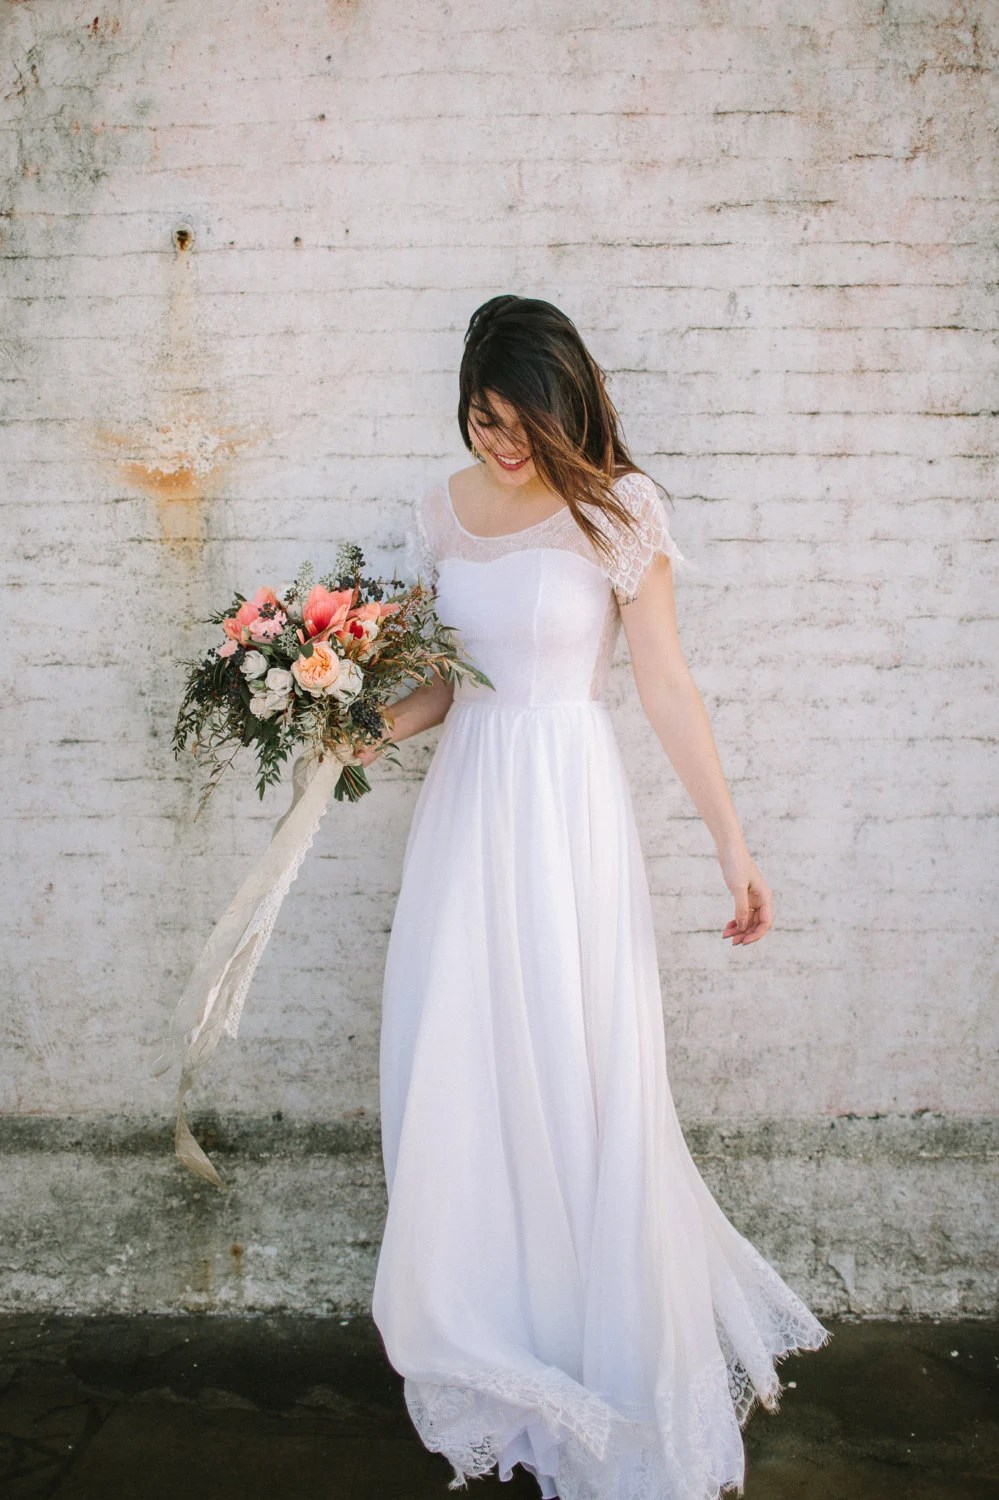 Indie Wedding Dress with Lace Illusion Sweetheart Neckline